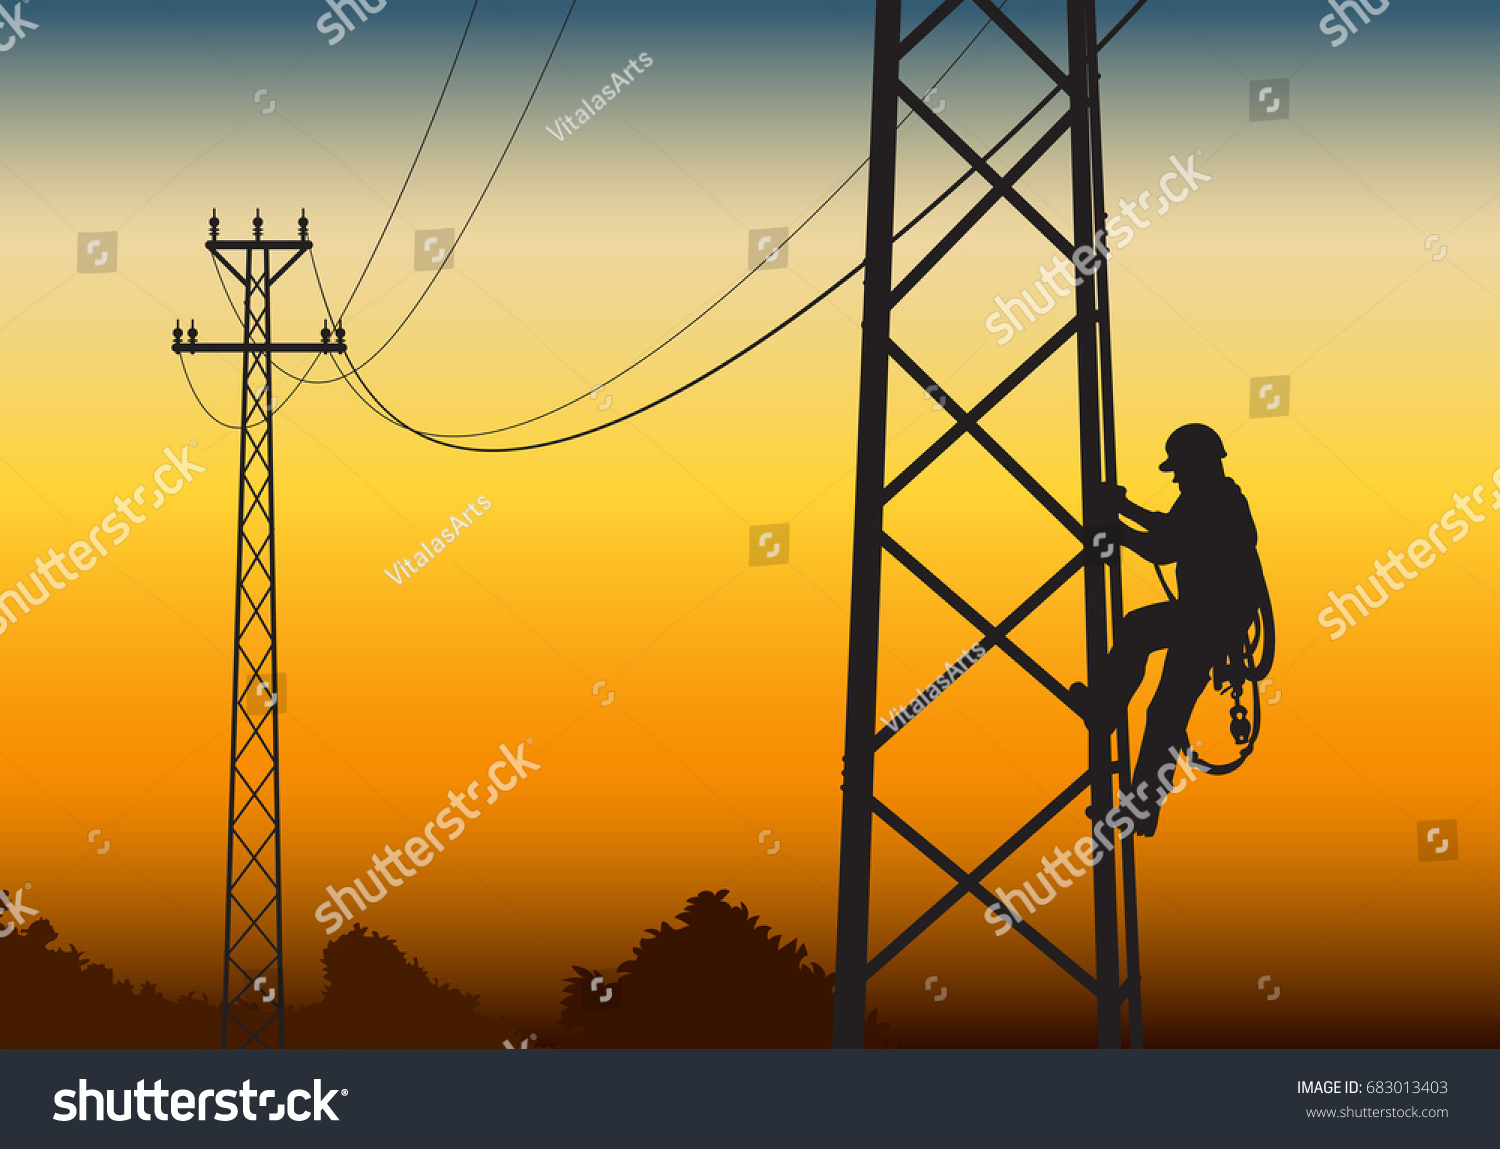 Electrician Climbing Tower Against Sunset Flat Stock Vector Royalty Free 683013403